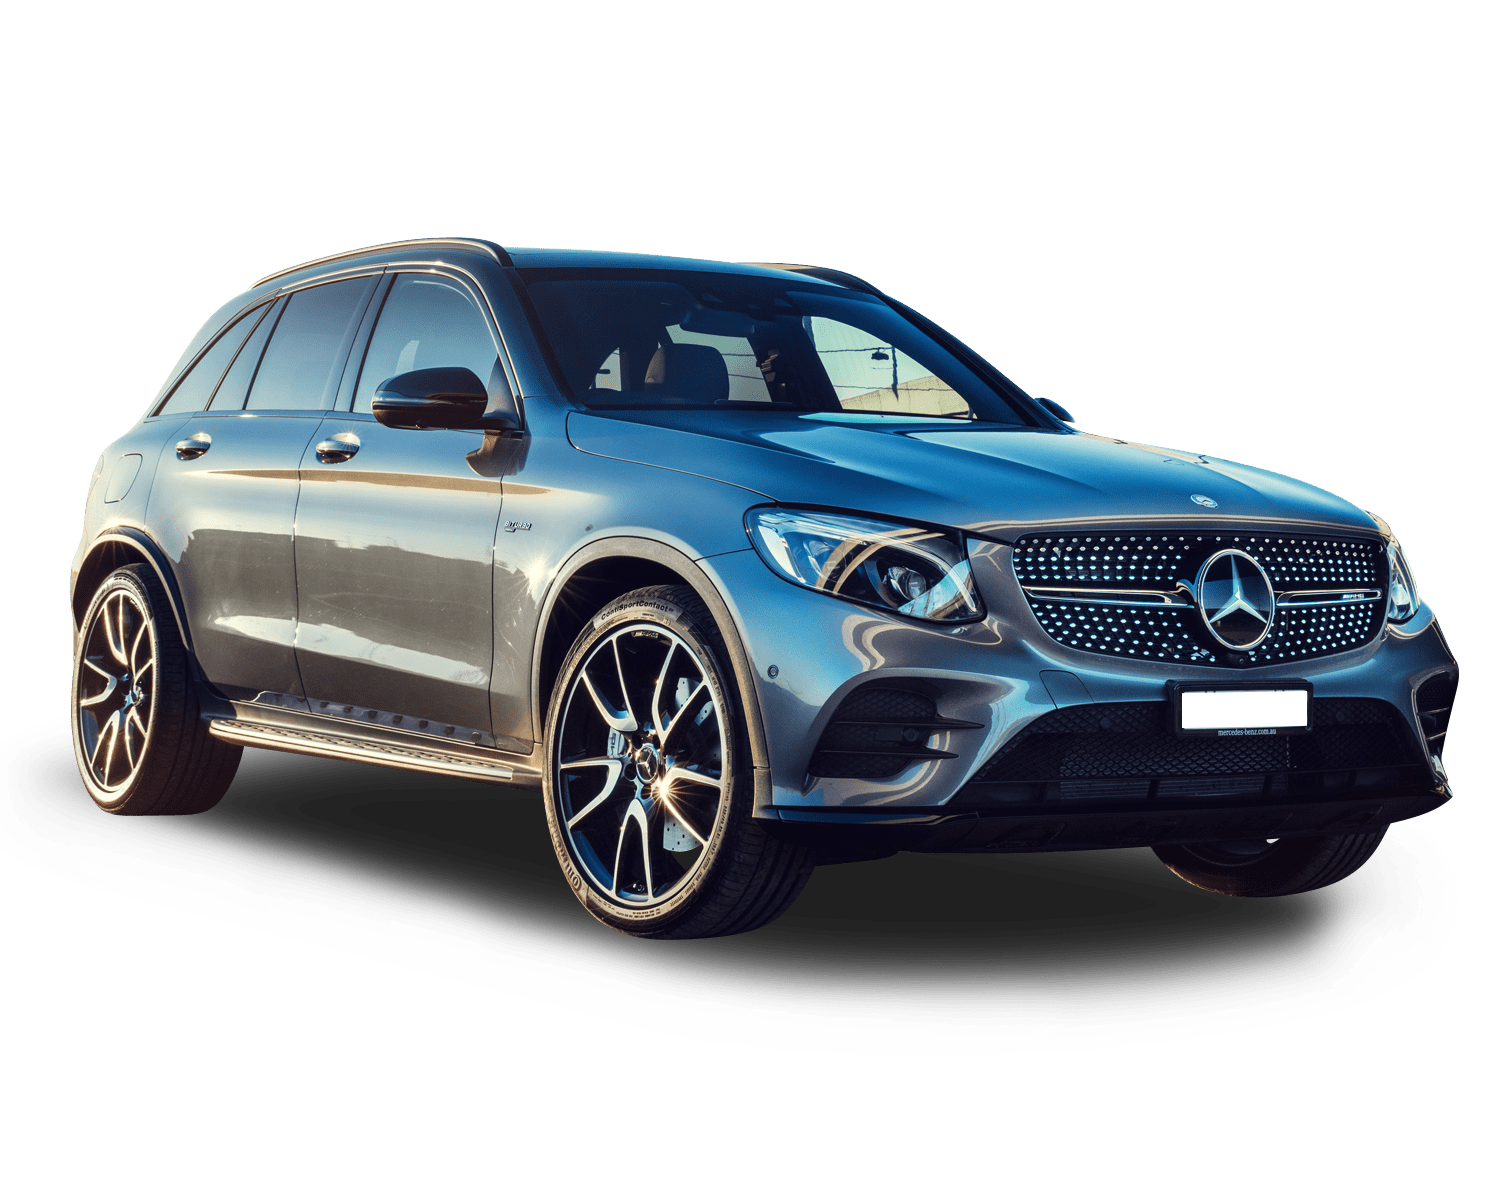 small pictures ig mercedes information suv gla benz specs